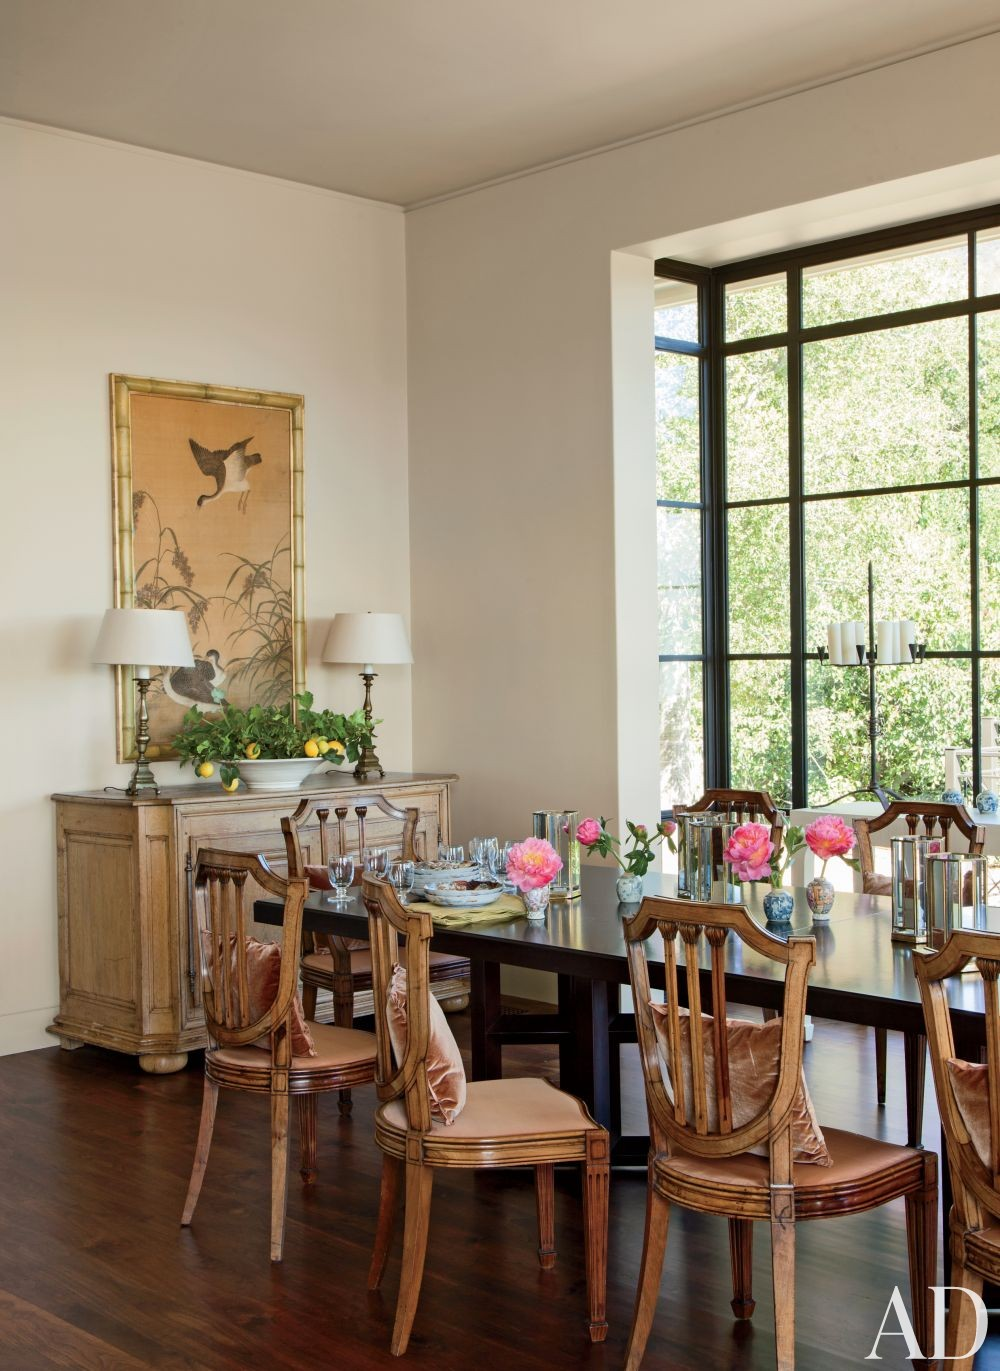 Traditional Dining Room by Suzanne Rheinstein & Assoc. and Manson-Hing Architecture in Montecito, California